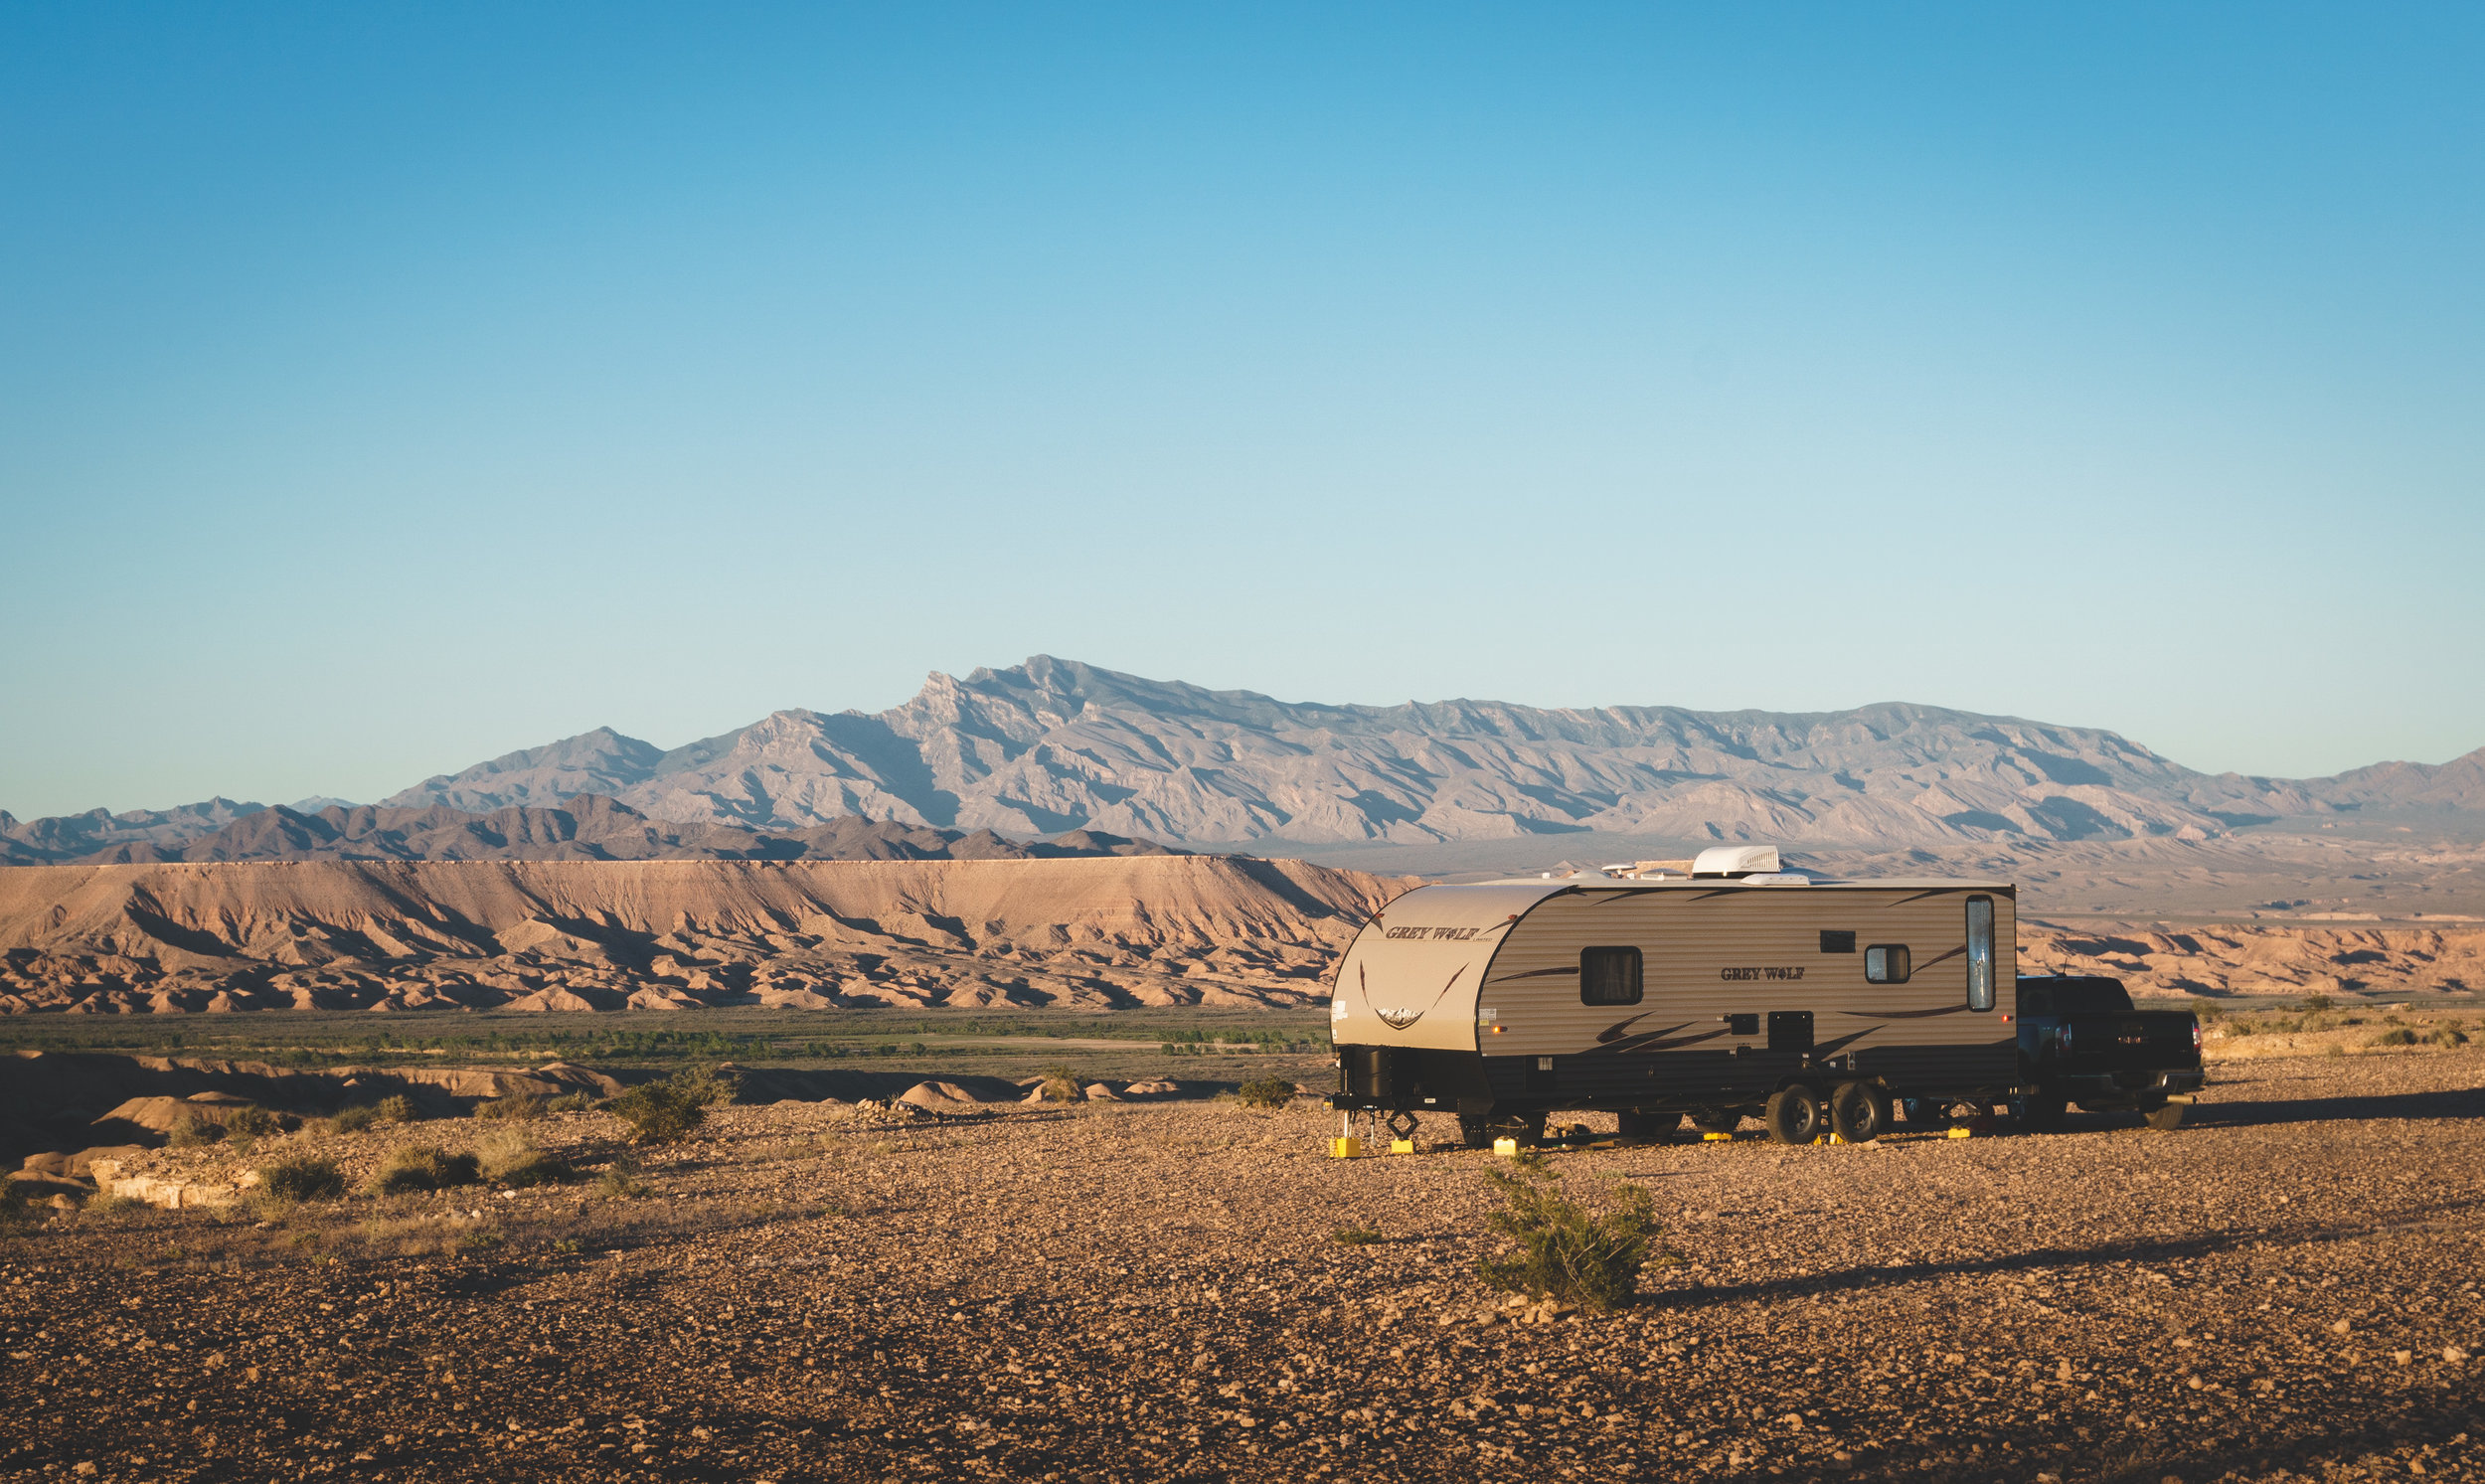 A gorgeous boondocking spot about an hour away from Las Vegas, NV. This would have been a great spot to soak up some solar power goodness had we outfitted the trailer with solar panels!